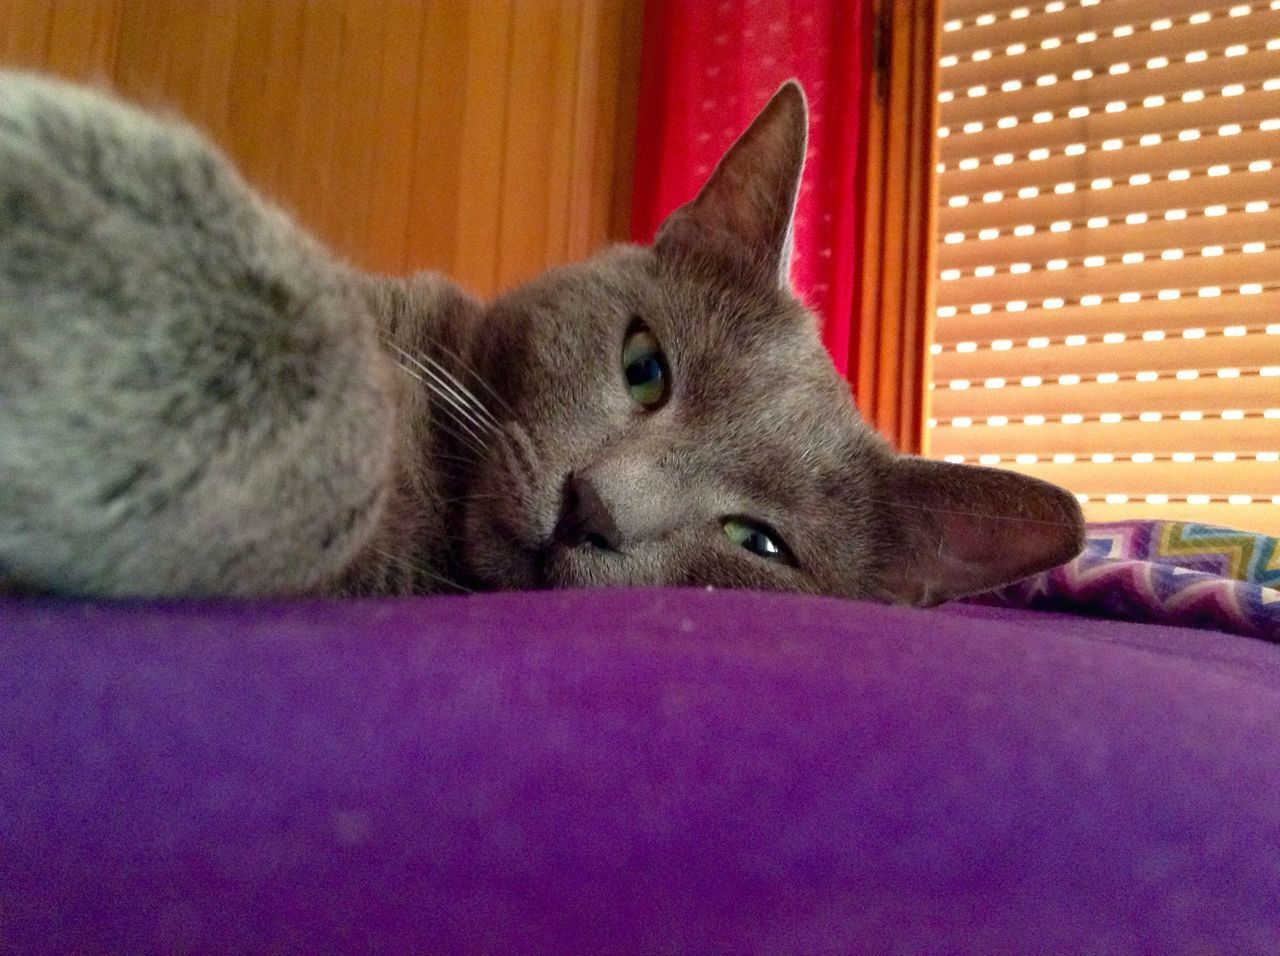 domestic cat, pets, one animal, animal themes, domestic animals, feline, mammal, indoors, cat, relaxation, lying down, resting, bed, no people, purple, whisker, home interior, close-up, bedroom, day